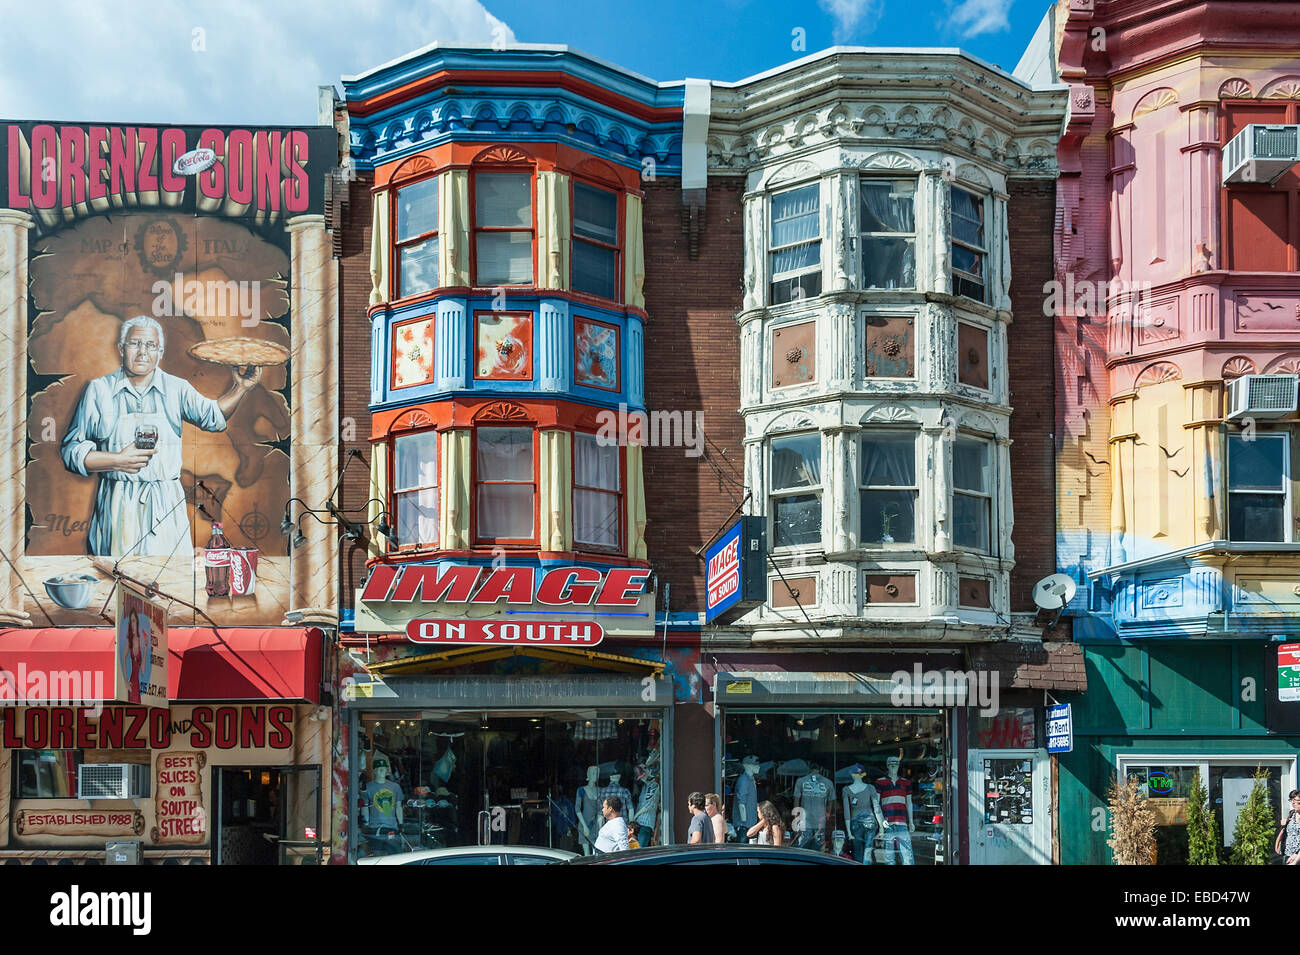 Colorful shop buildings located on South Street, the trendy area of Philadelphia, Pennsylvania, USA - Stock Image